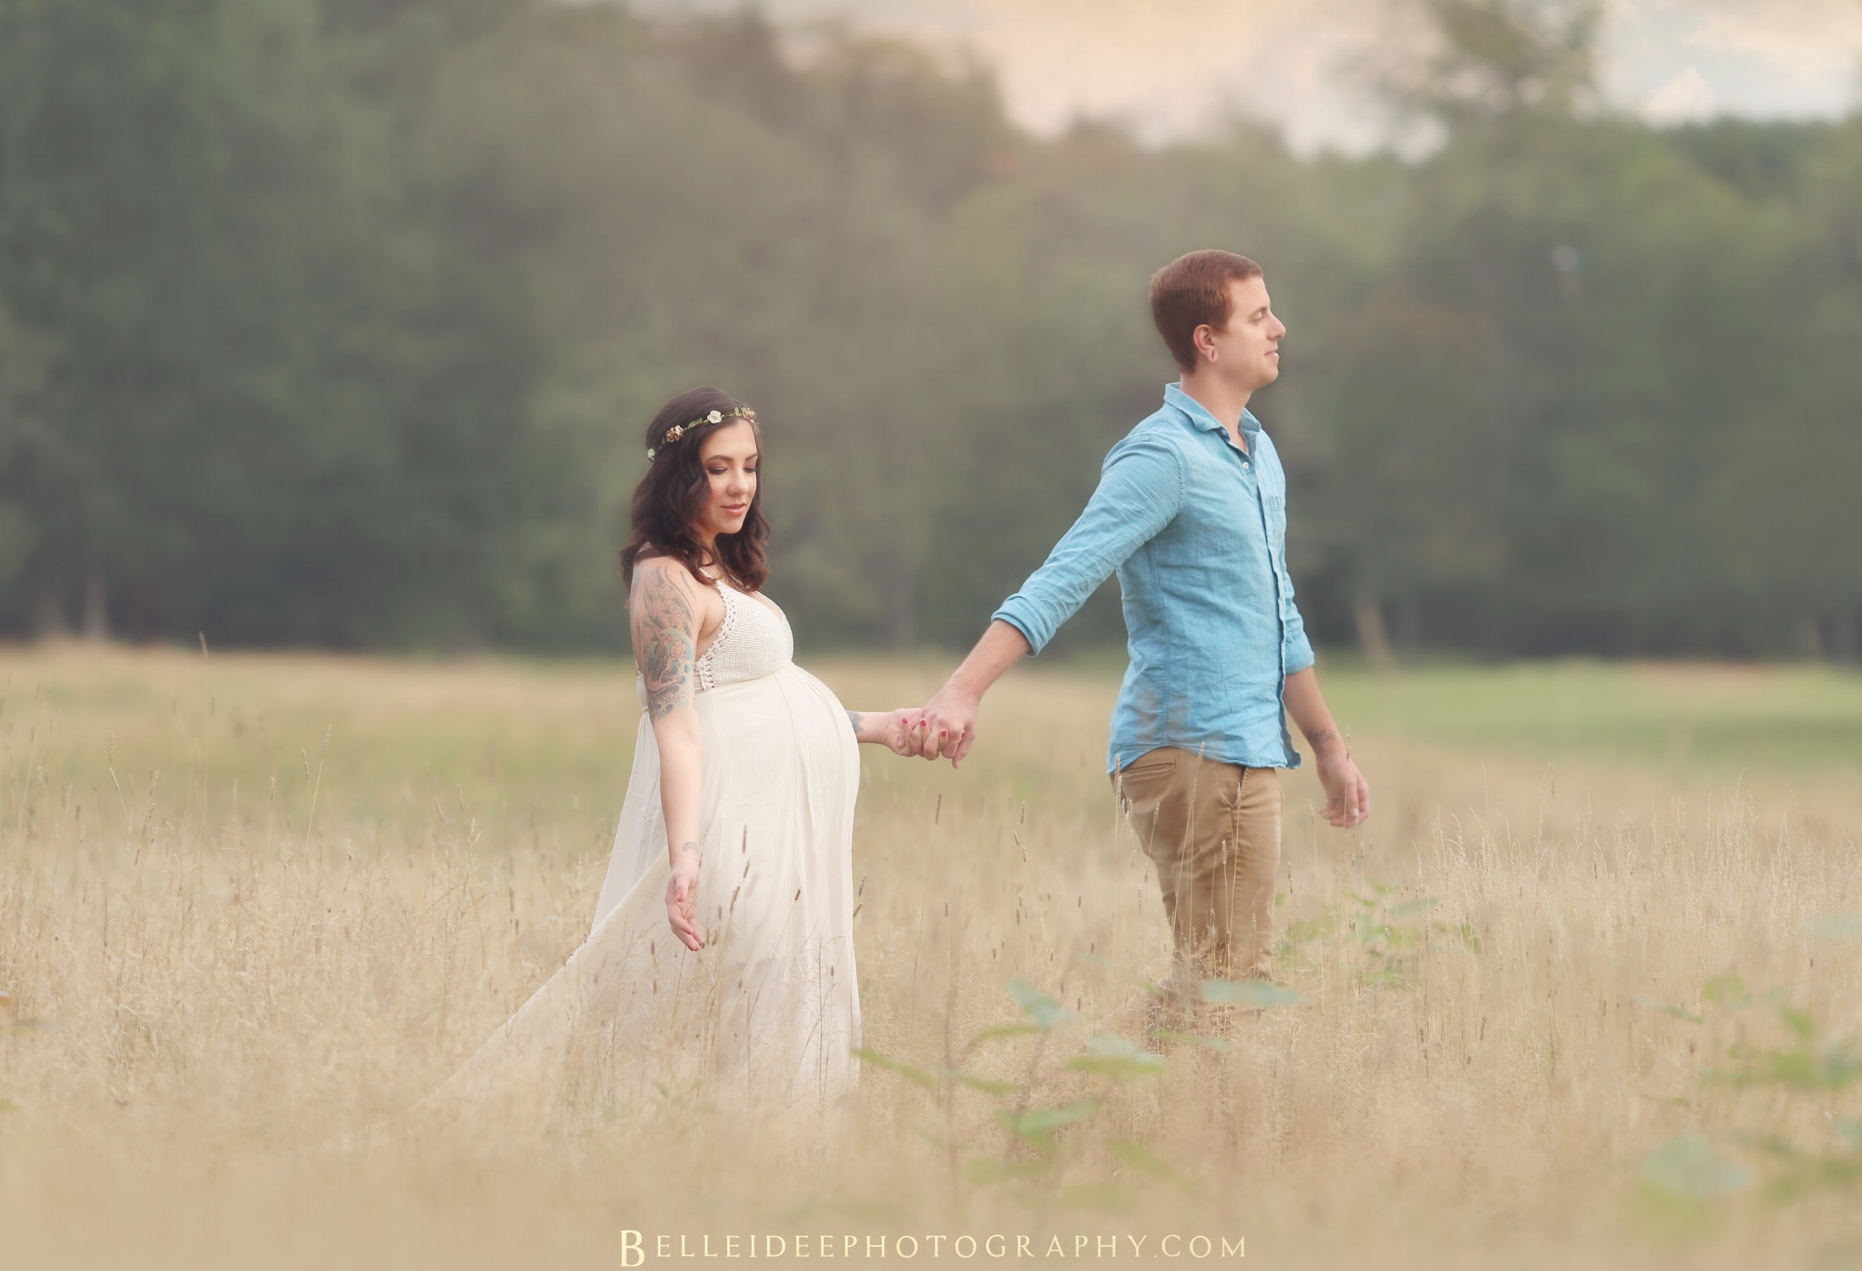 Copy of best maternity photos in orchard park, ny